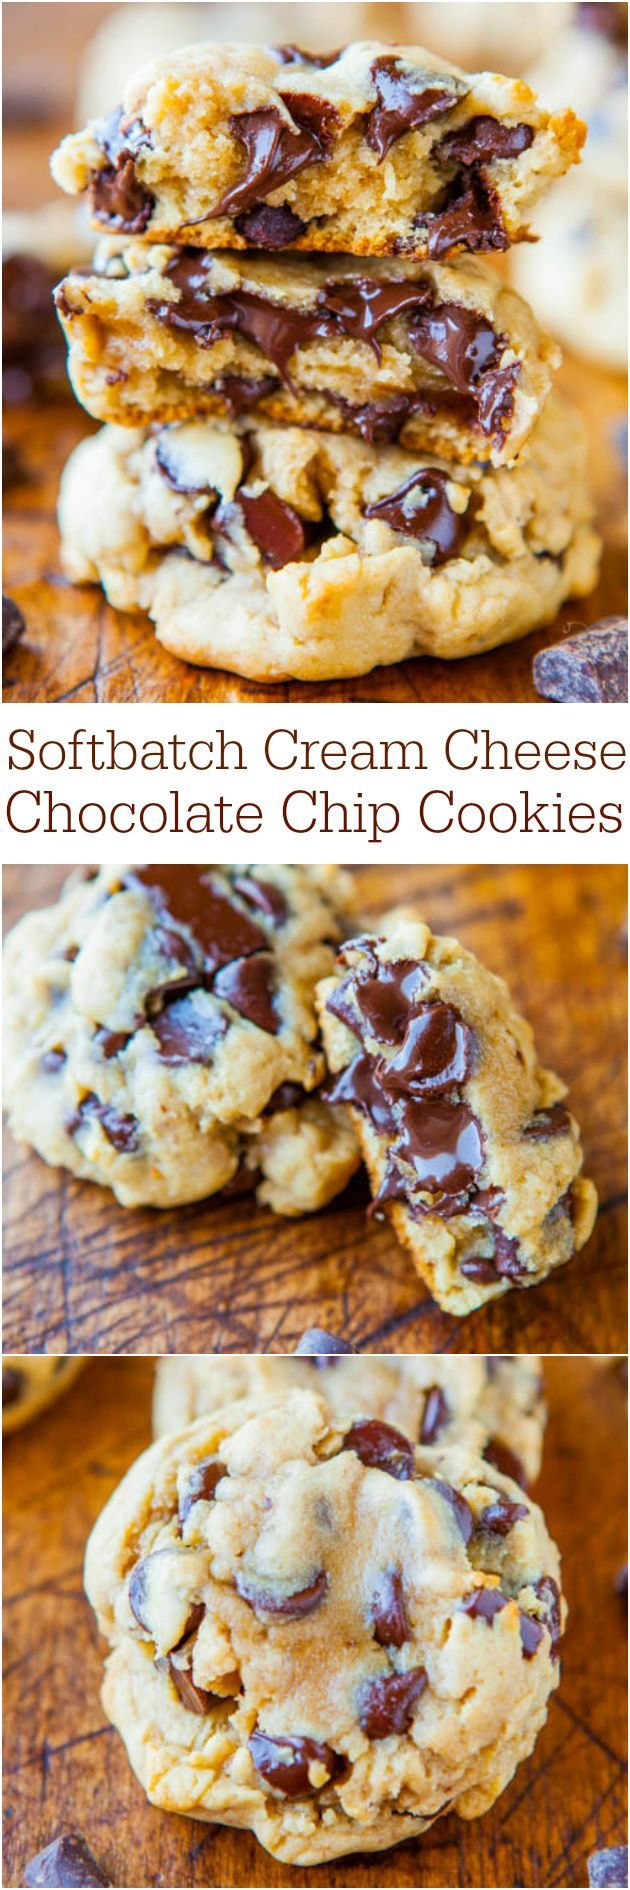 Softbatch Cream Cheese Chocolate Chip Cookies - Move over butter, cream cheese makes these cookies thick and super soft! @Averie Sunshine Averie Cooks